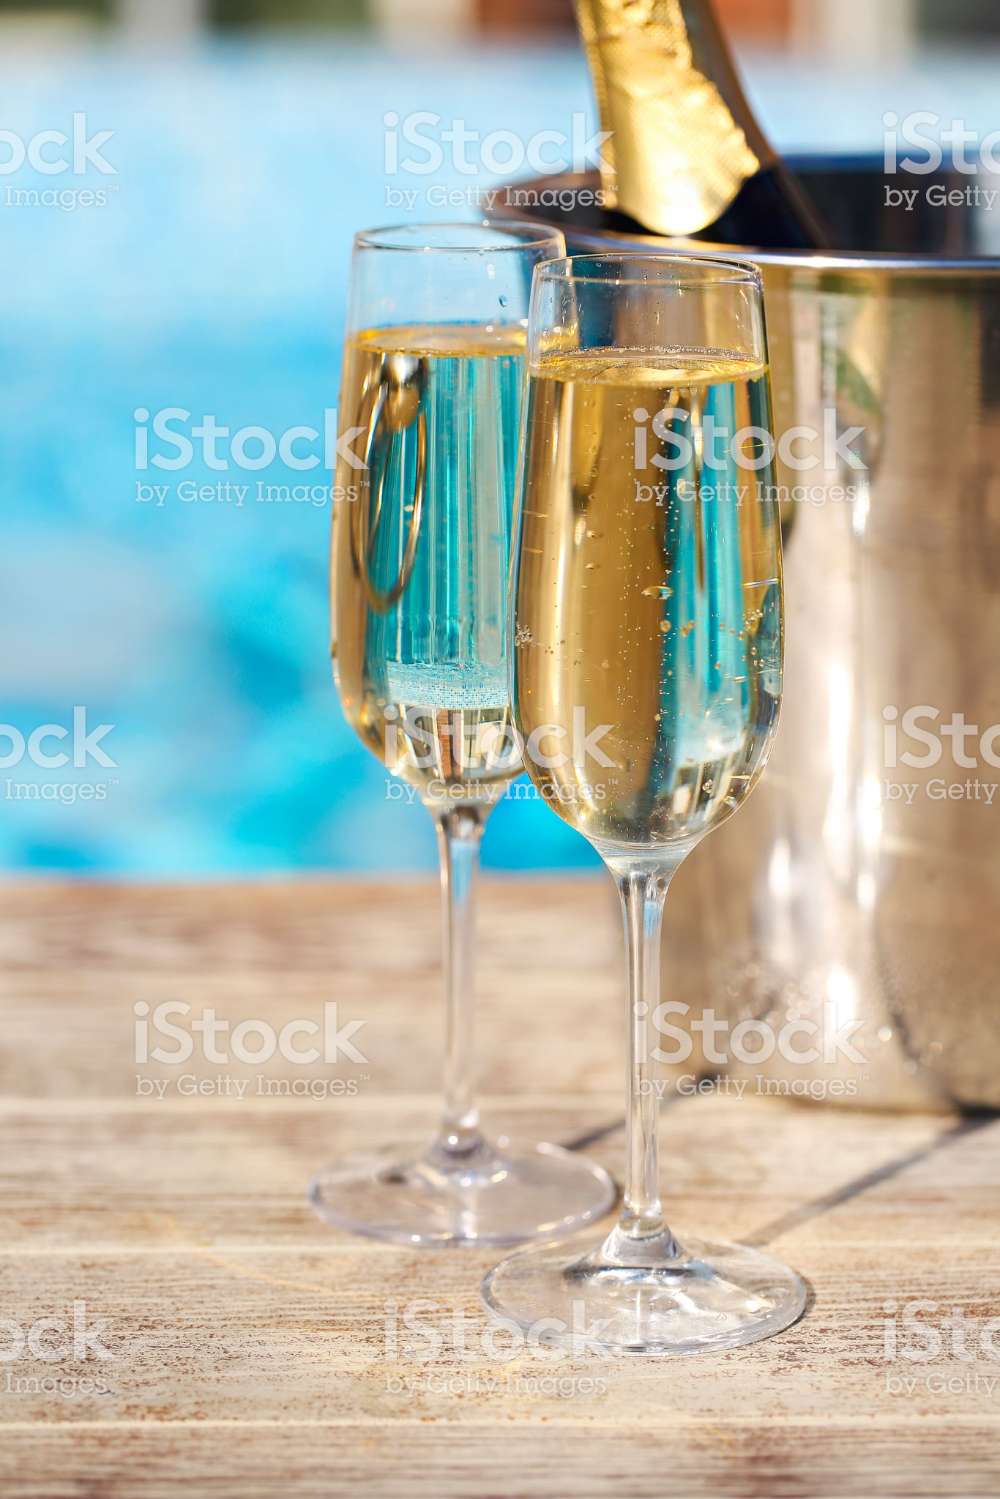 Champagne Glasses And Bottle In Ice Bucket Near Swimming Pool Champagne Glasses Champagne Bottle